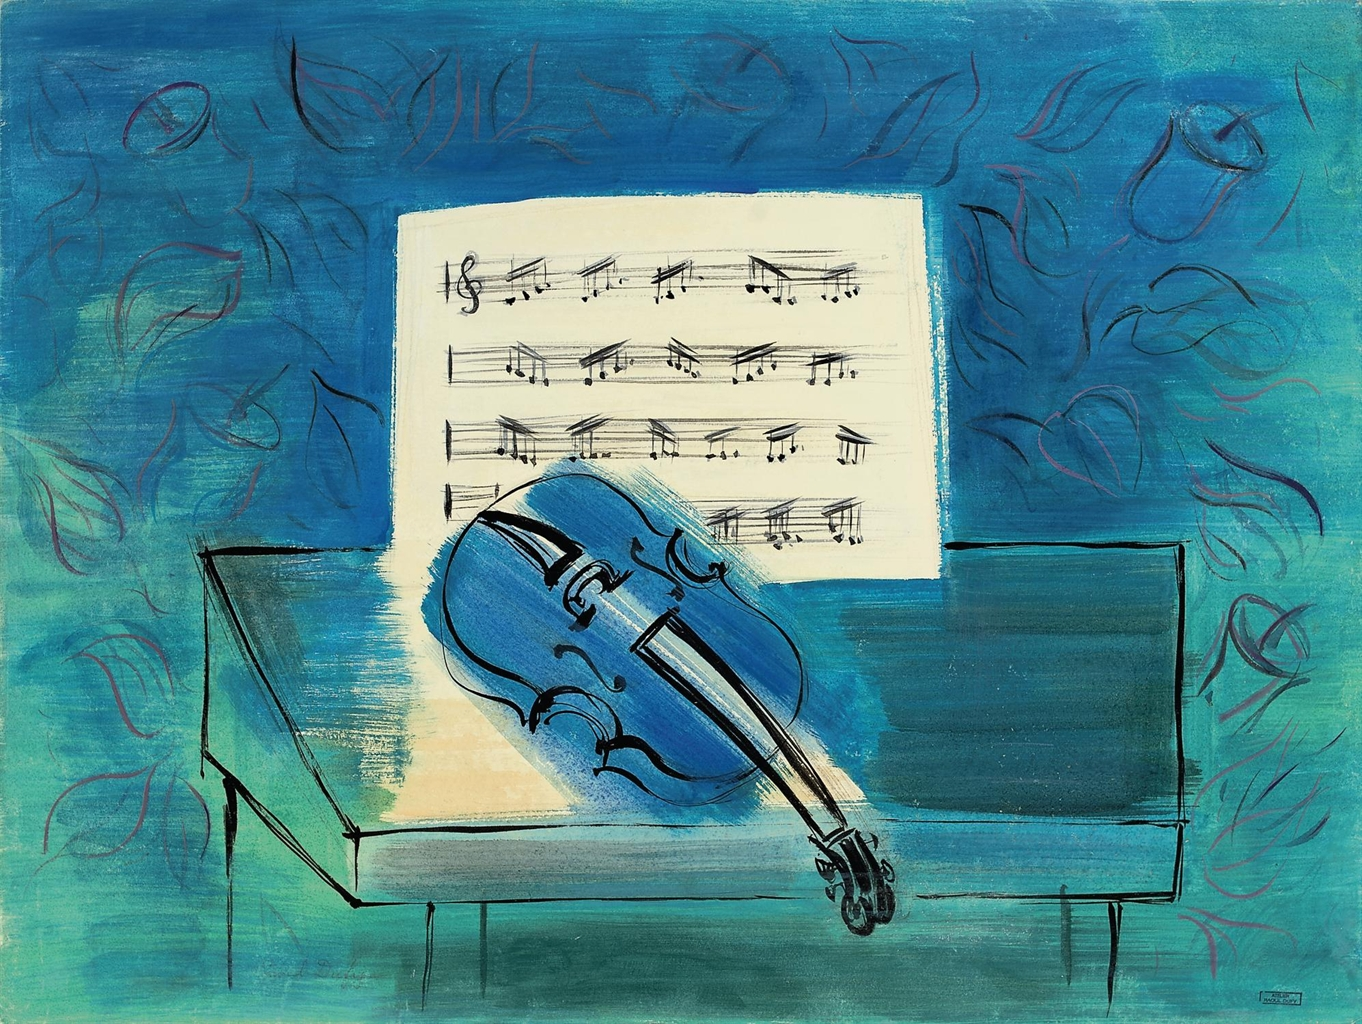 Raoul-Dufy-le-violon-bleu-insight-coaching-art, musique, violon, music